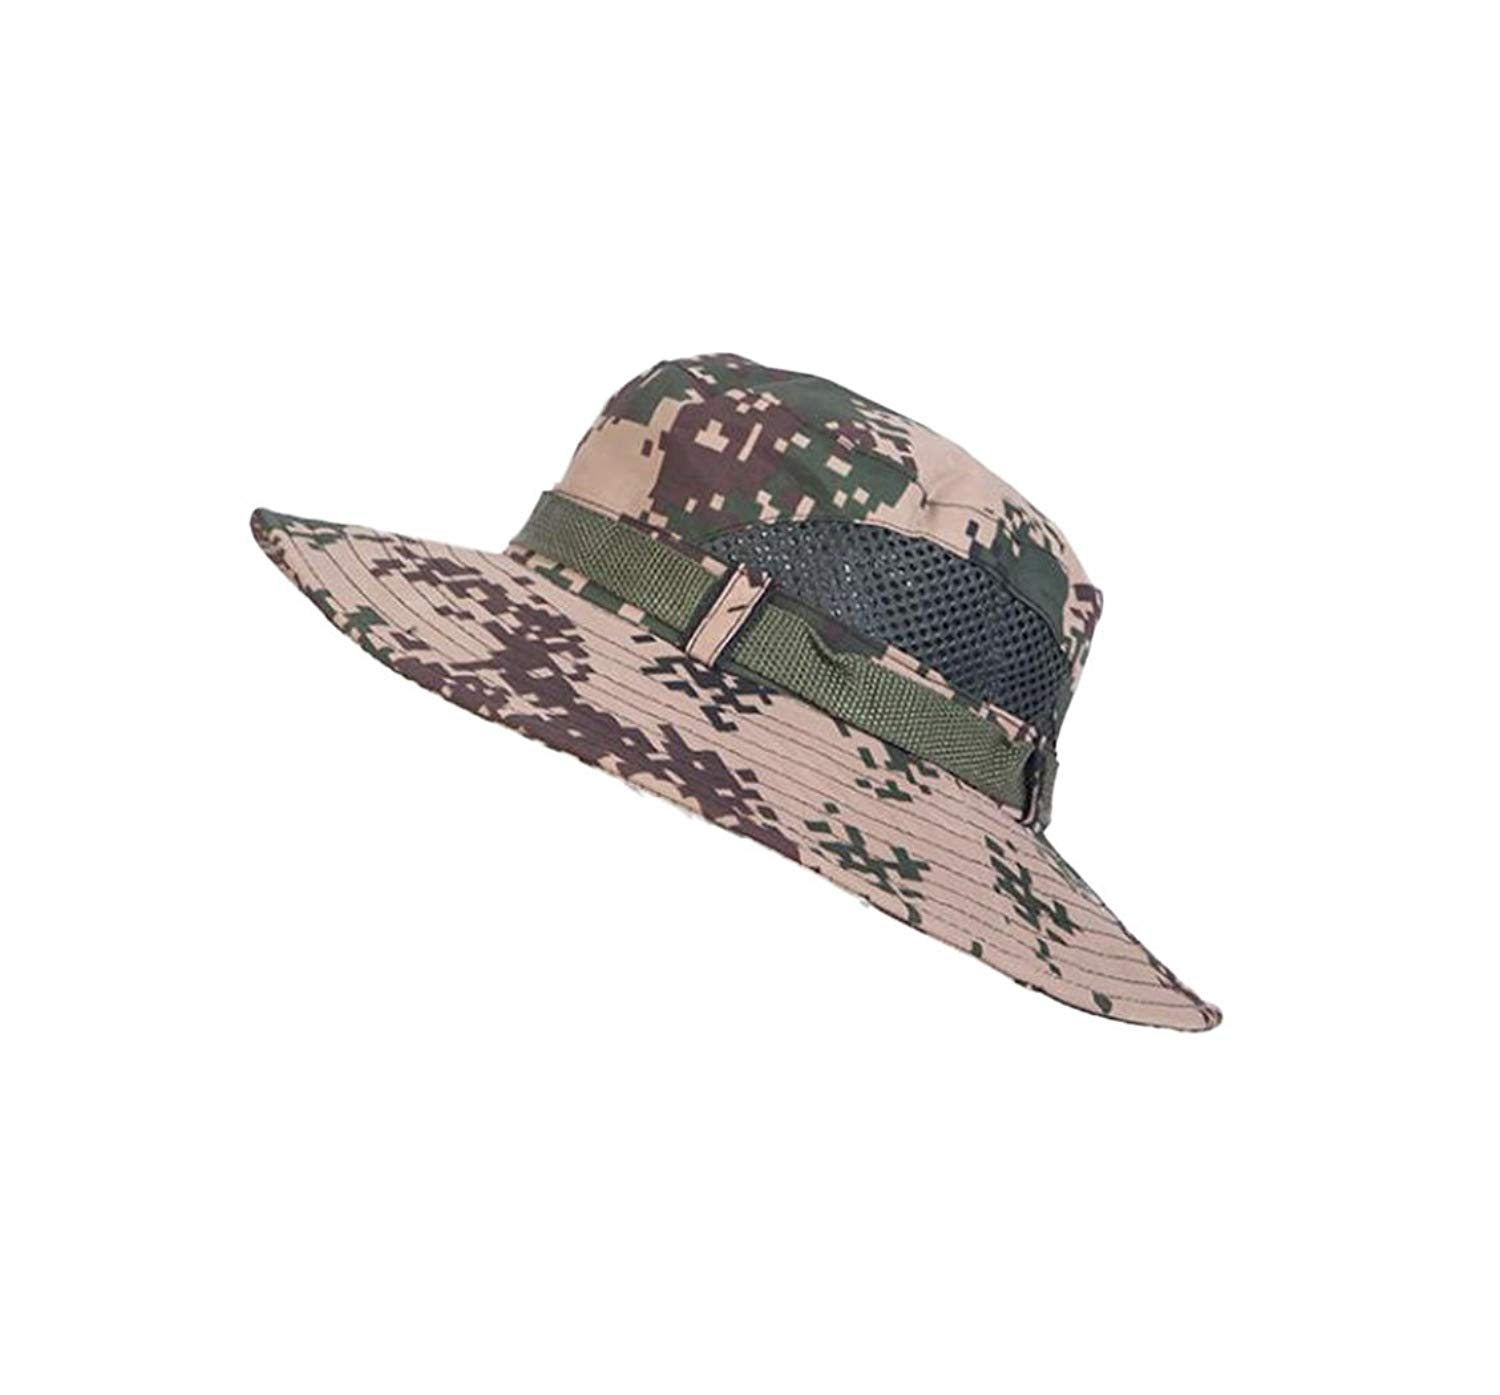 adcd1853c Get Quotations · 4URNEED Camo Mens Wide Brim Outdoor Sun-Hats Fishing Hats  Hunting Hats Safari Summer Hat